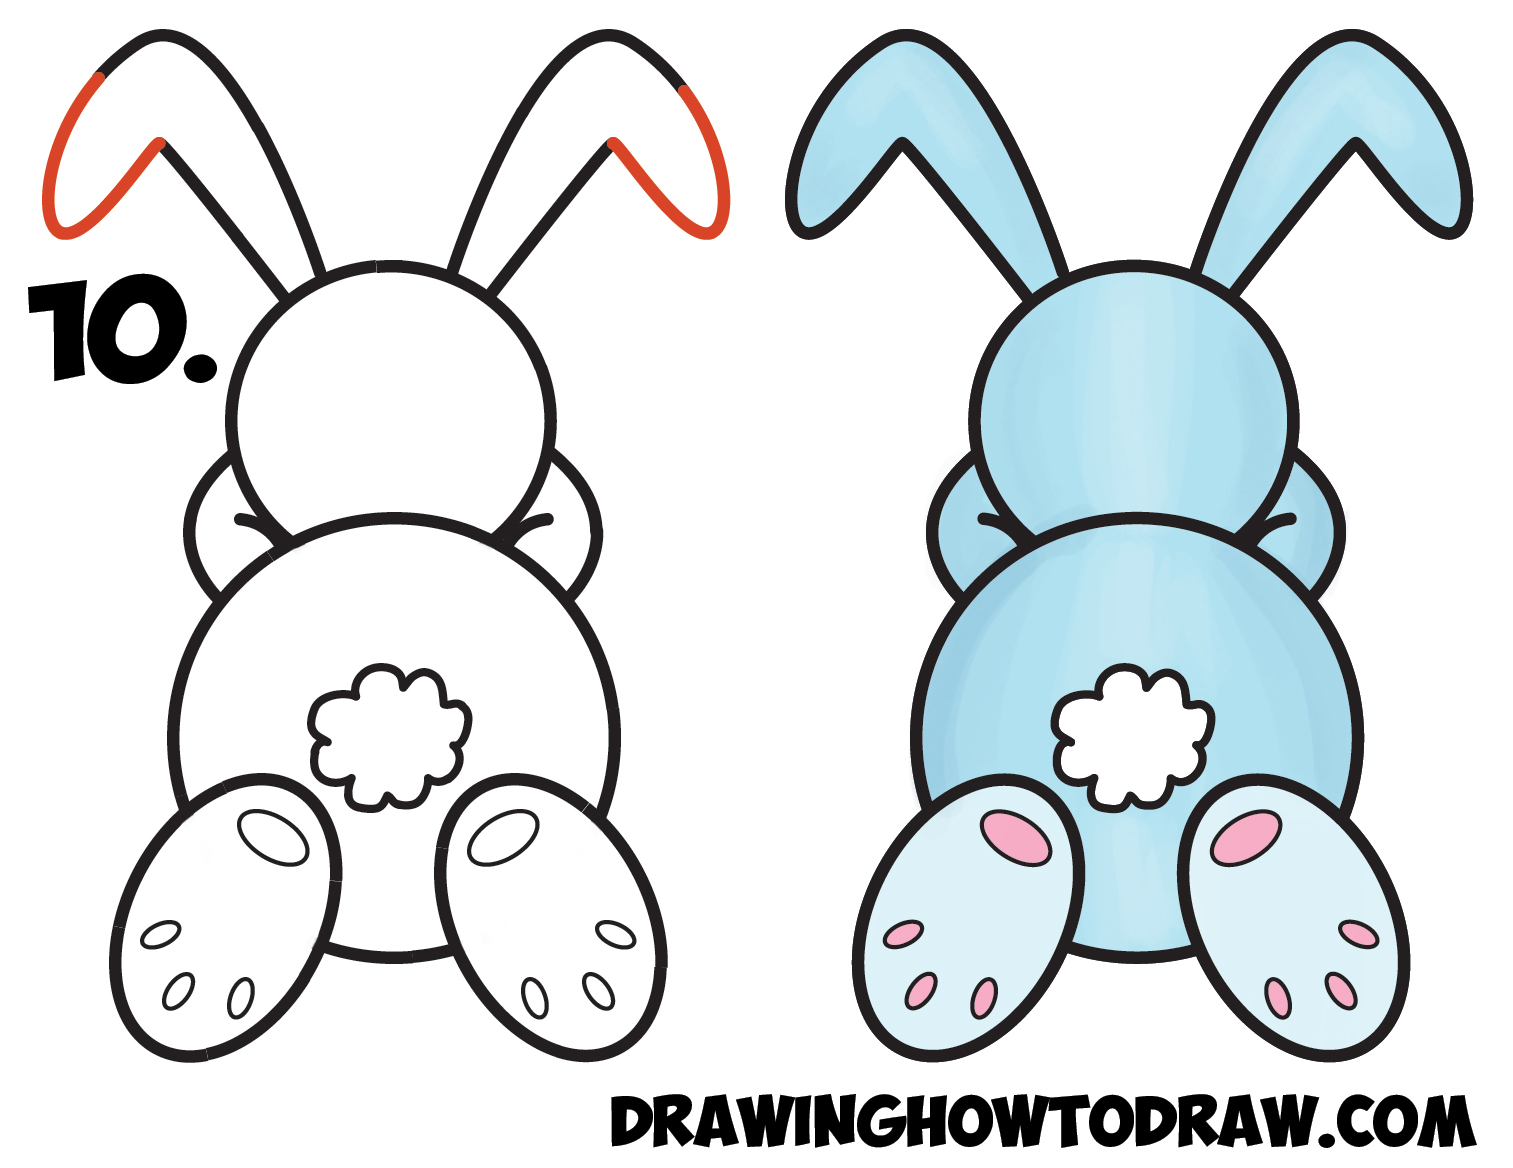 1513x1168 Bunny Rabbit Drawing How To Draw A Cute Cartoon Sleeping Bunny